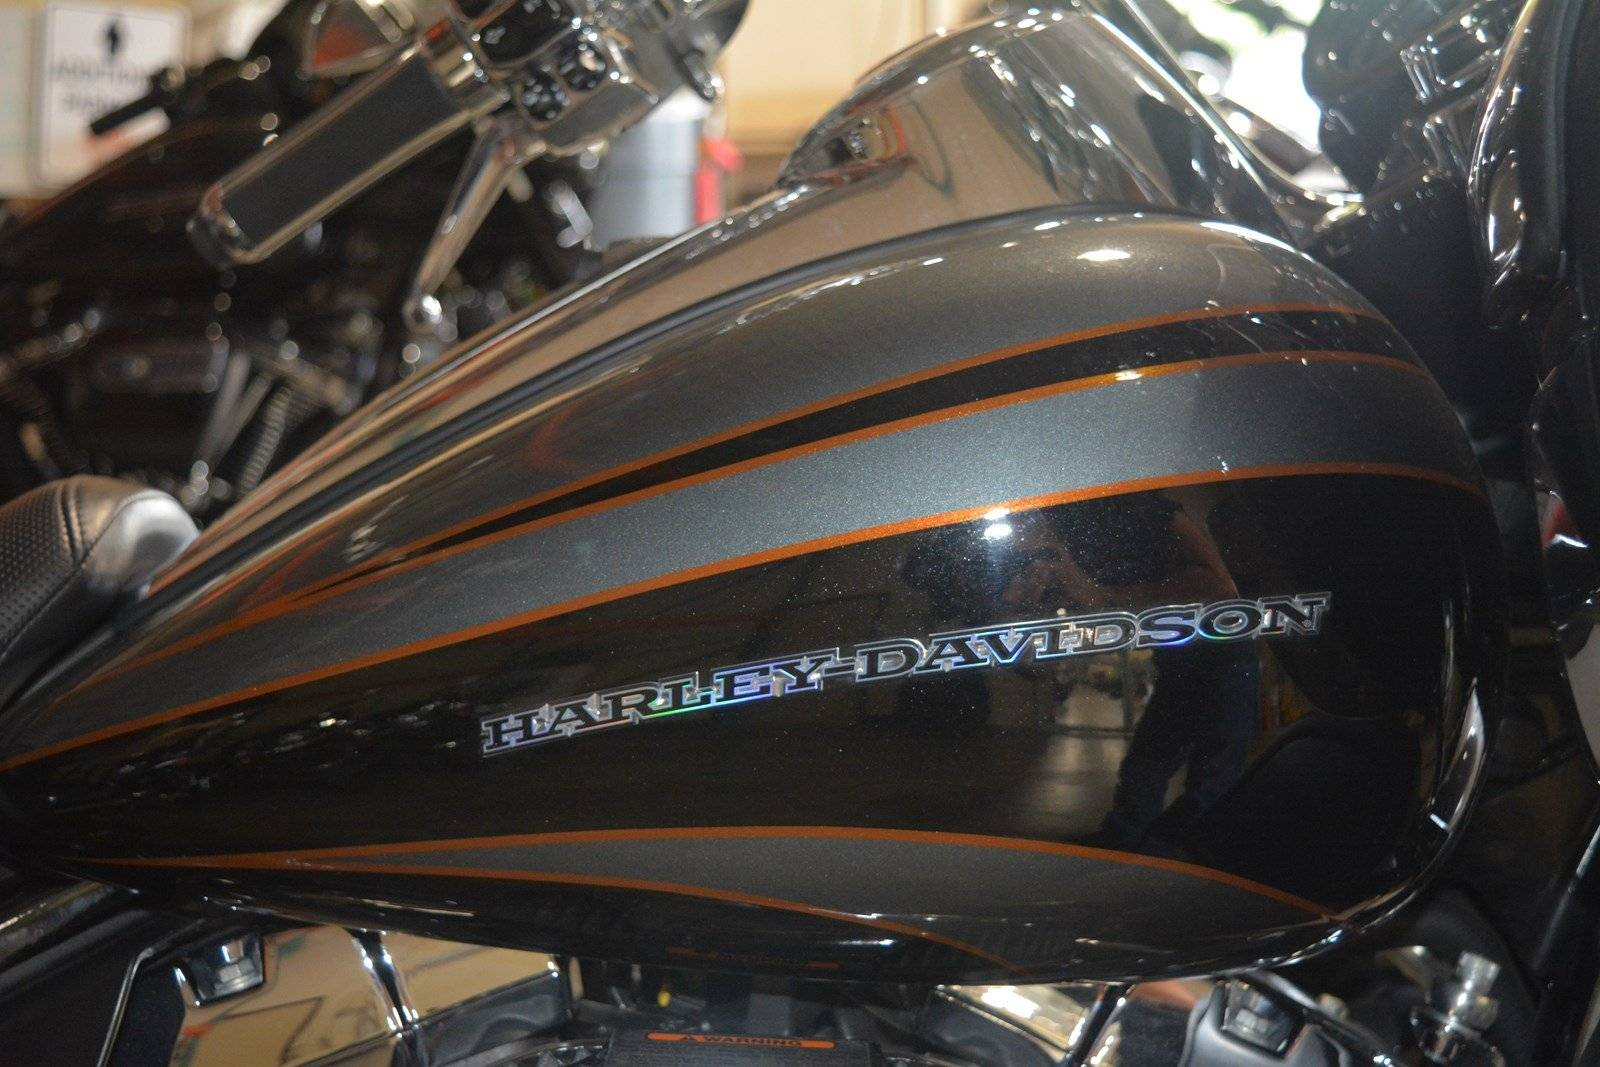 2016 Harley-Davidson Road Glide Ultra in San Antonio, Texas - Photo 4